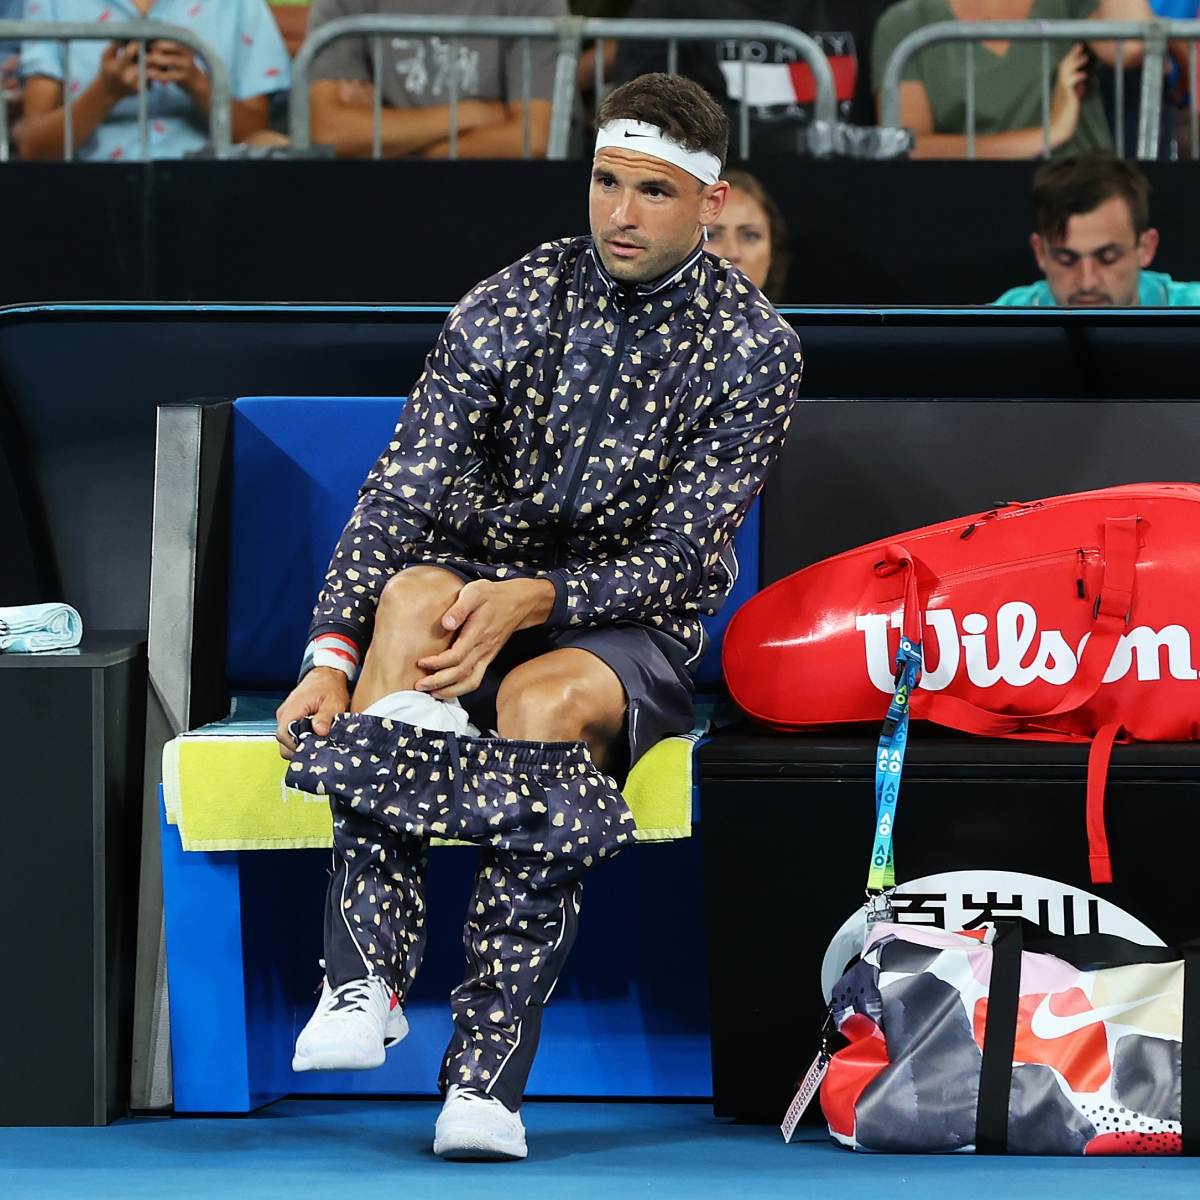 'Does he come from the bedroom?': Twitterati troll Grigor Dimitrov for wearing weird outfit at Australia Open